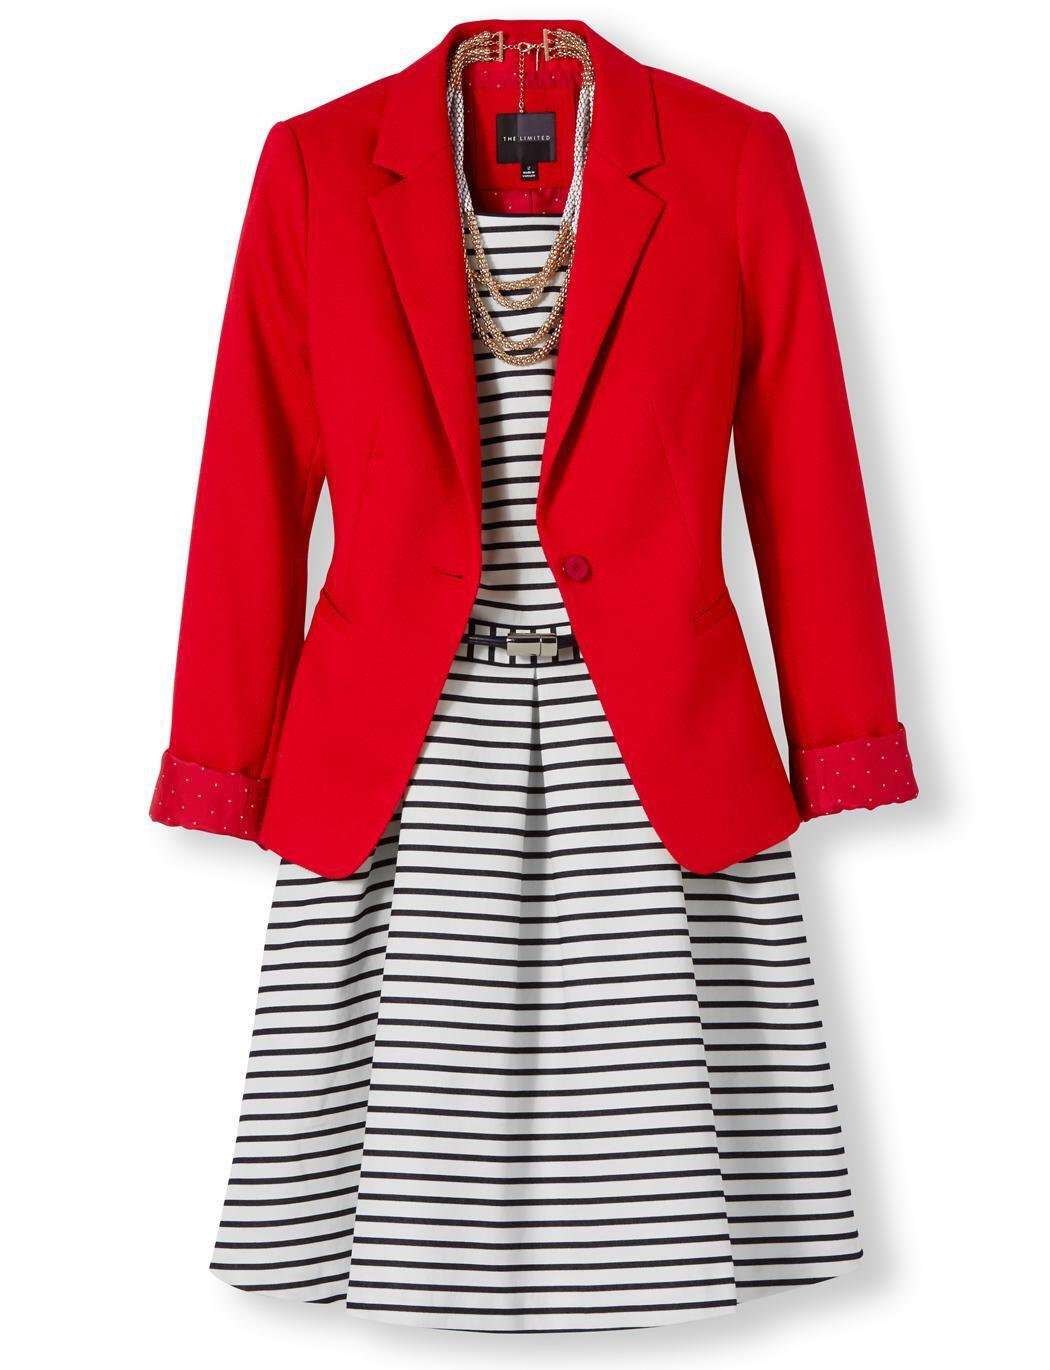 11 inspiring ways to wear your red blazer right now 9 - 11 inspiring ways to wear your red blazer right now